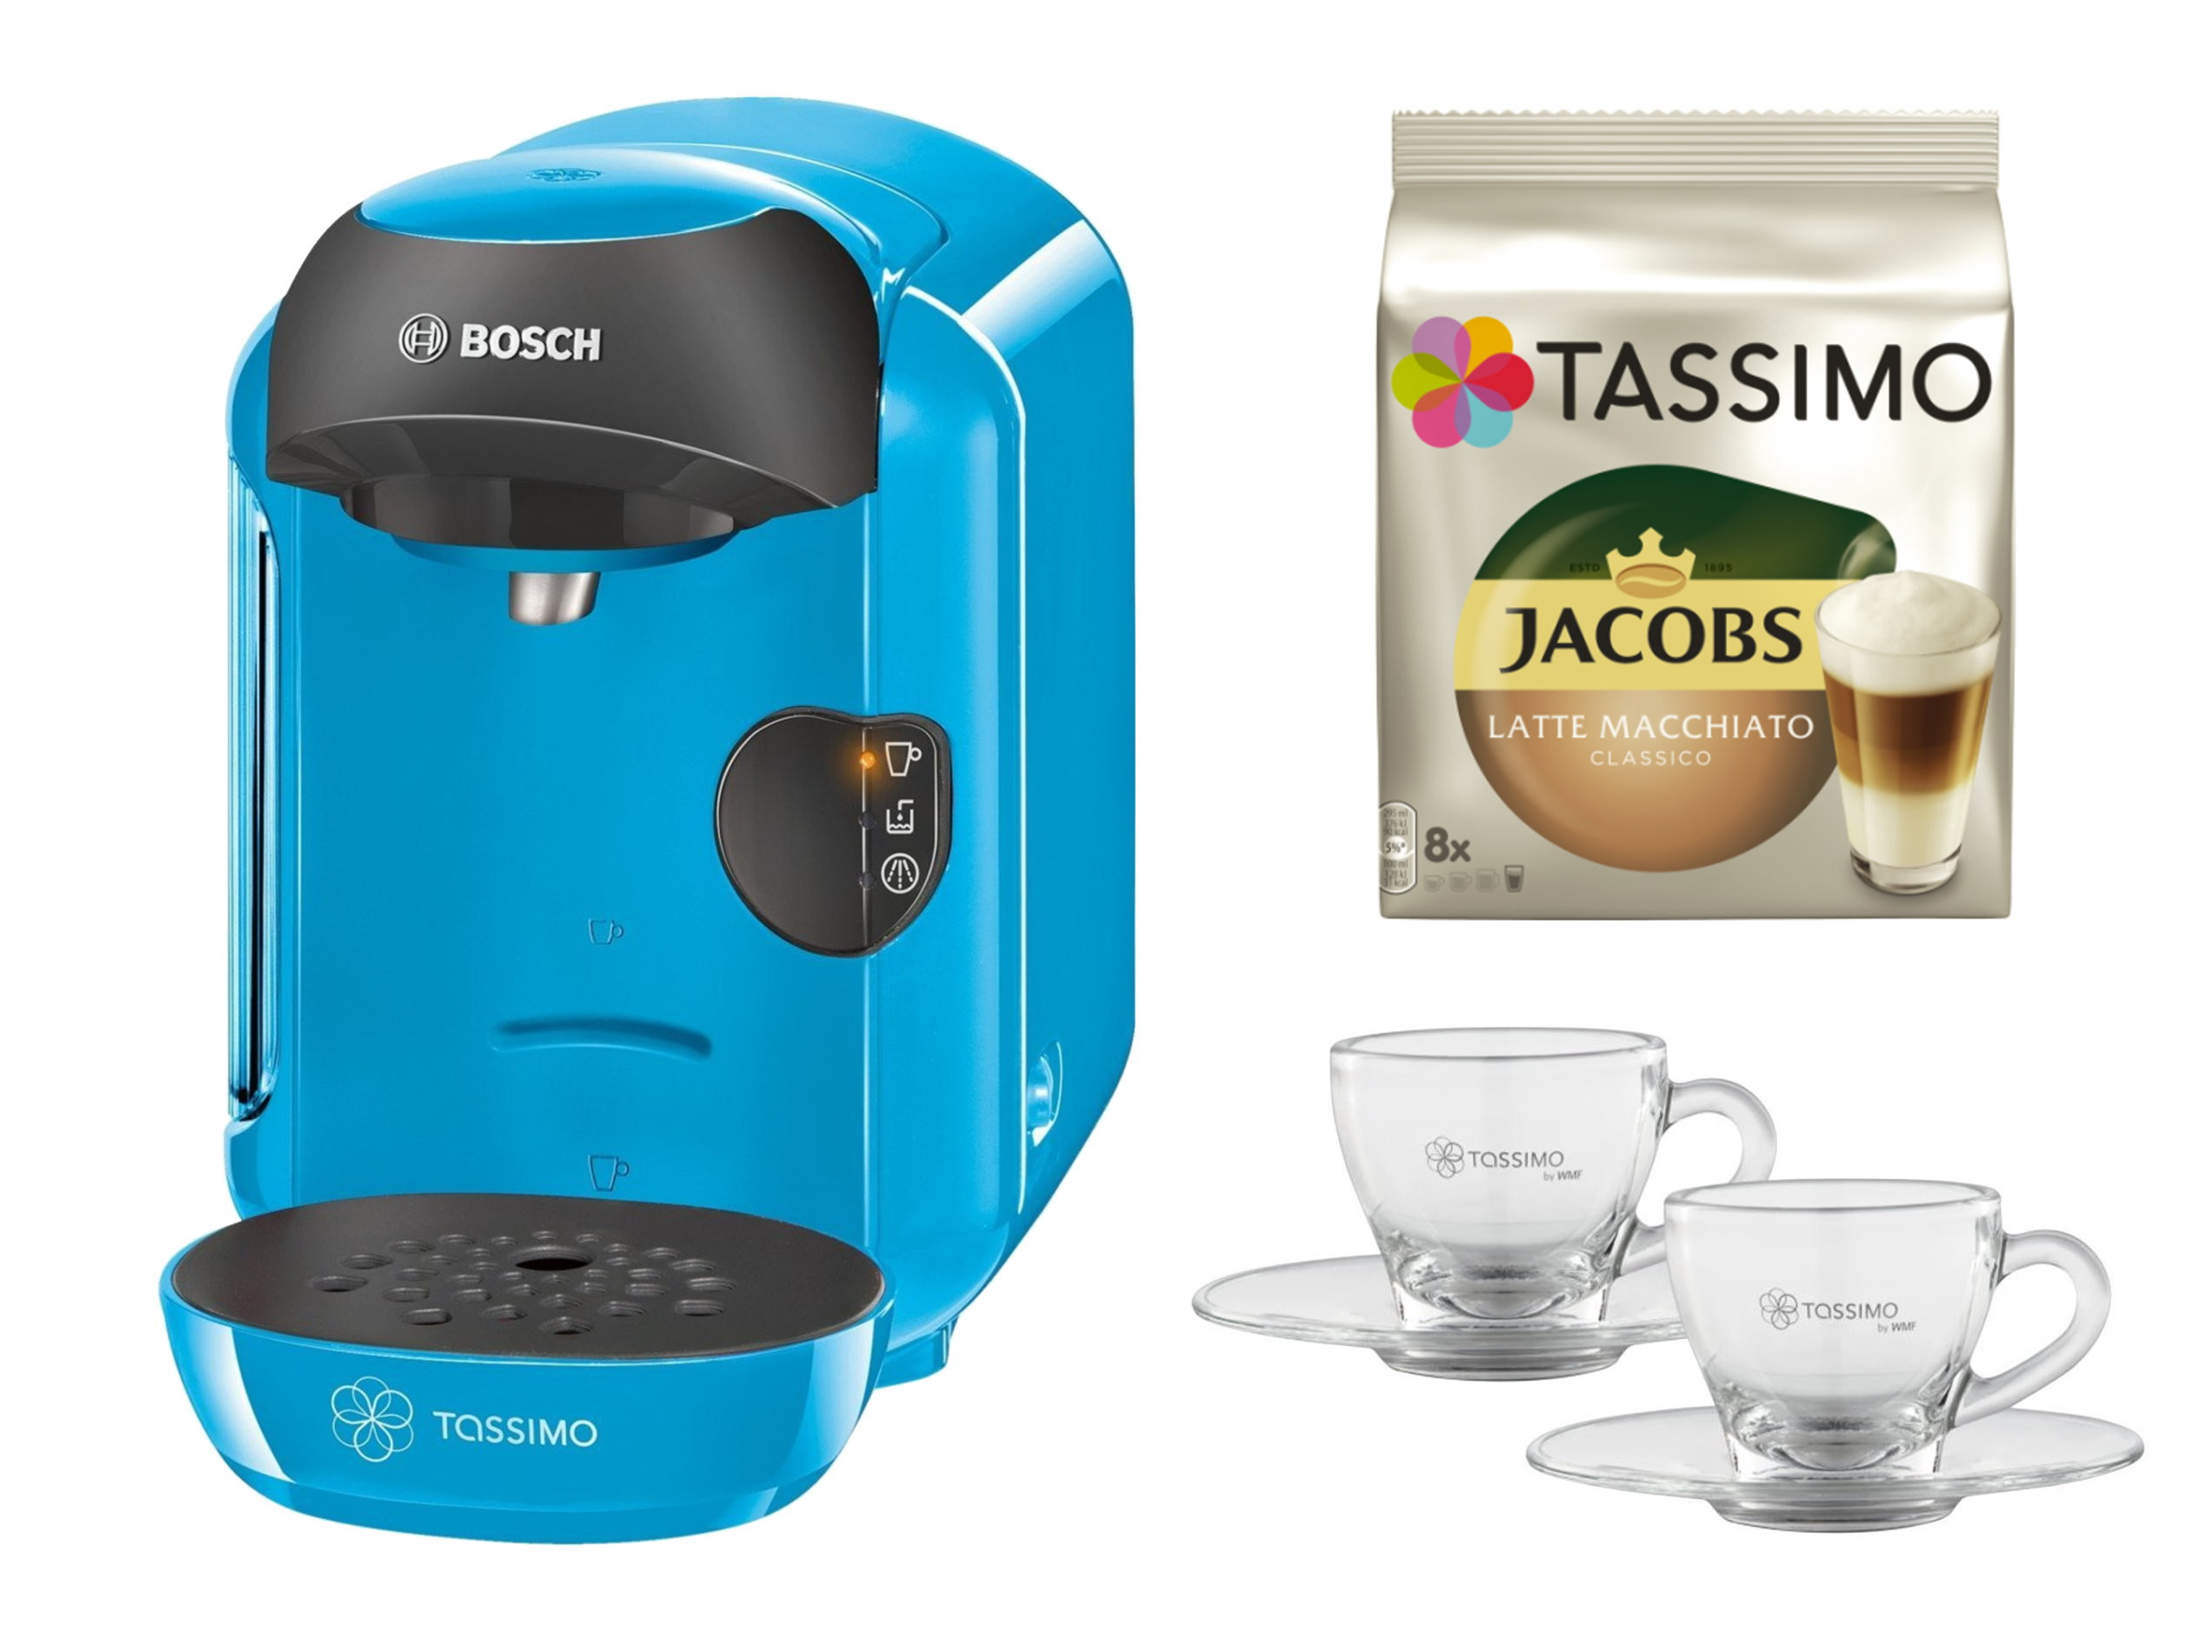 bosch tassimo vivy 20 eur gutscheine jacobs tdiscs wmf espresso gl ser set ebay. Black Bedroom Furniture Sets. Home Design Ideas